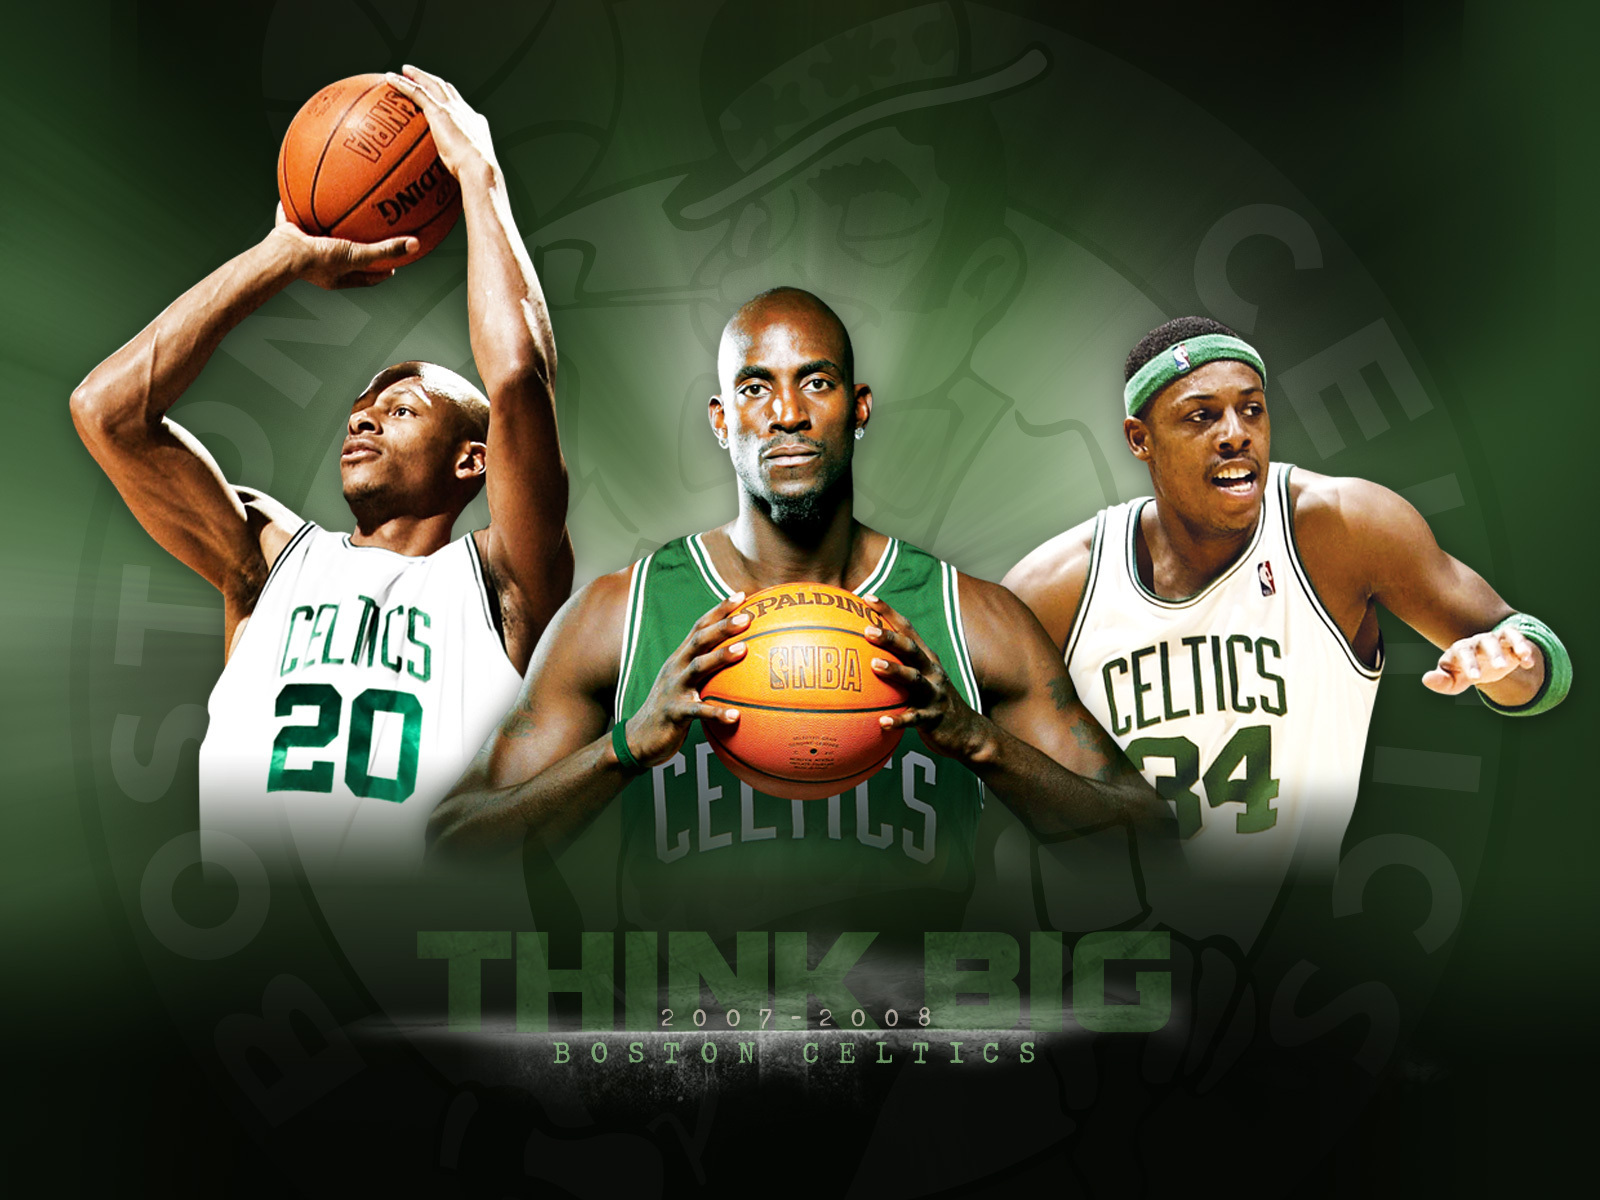 boston celtic - Boston Celtics Wallpaper (4568138) - Fanpop fanclubs